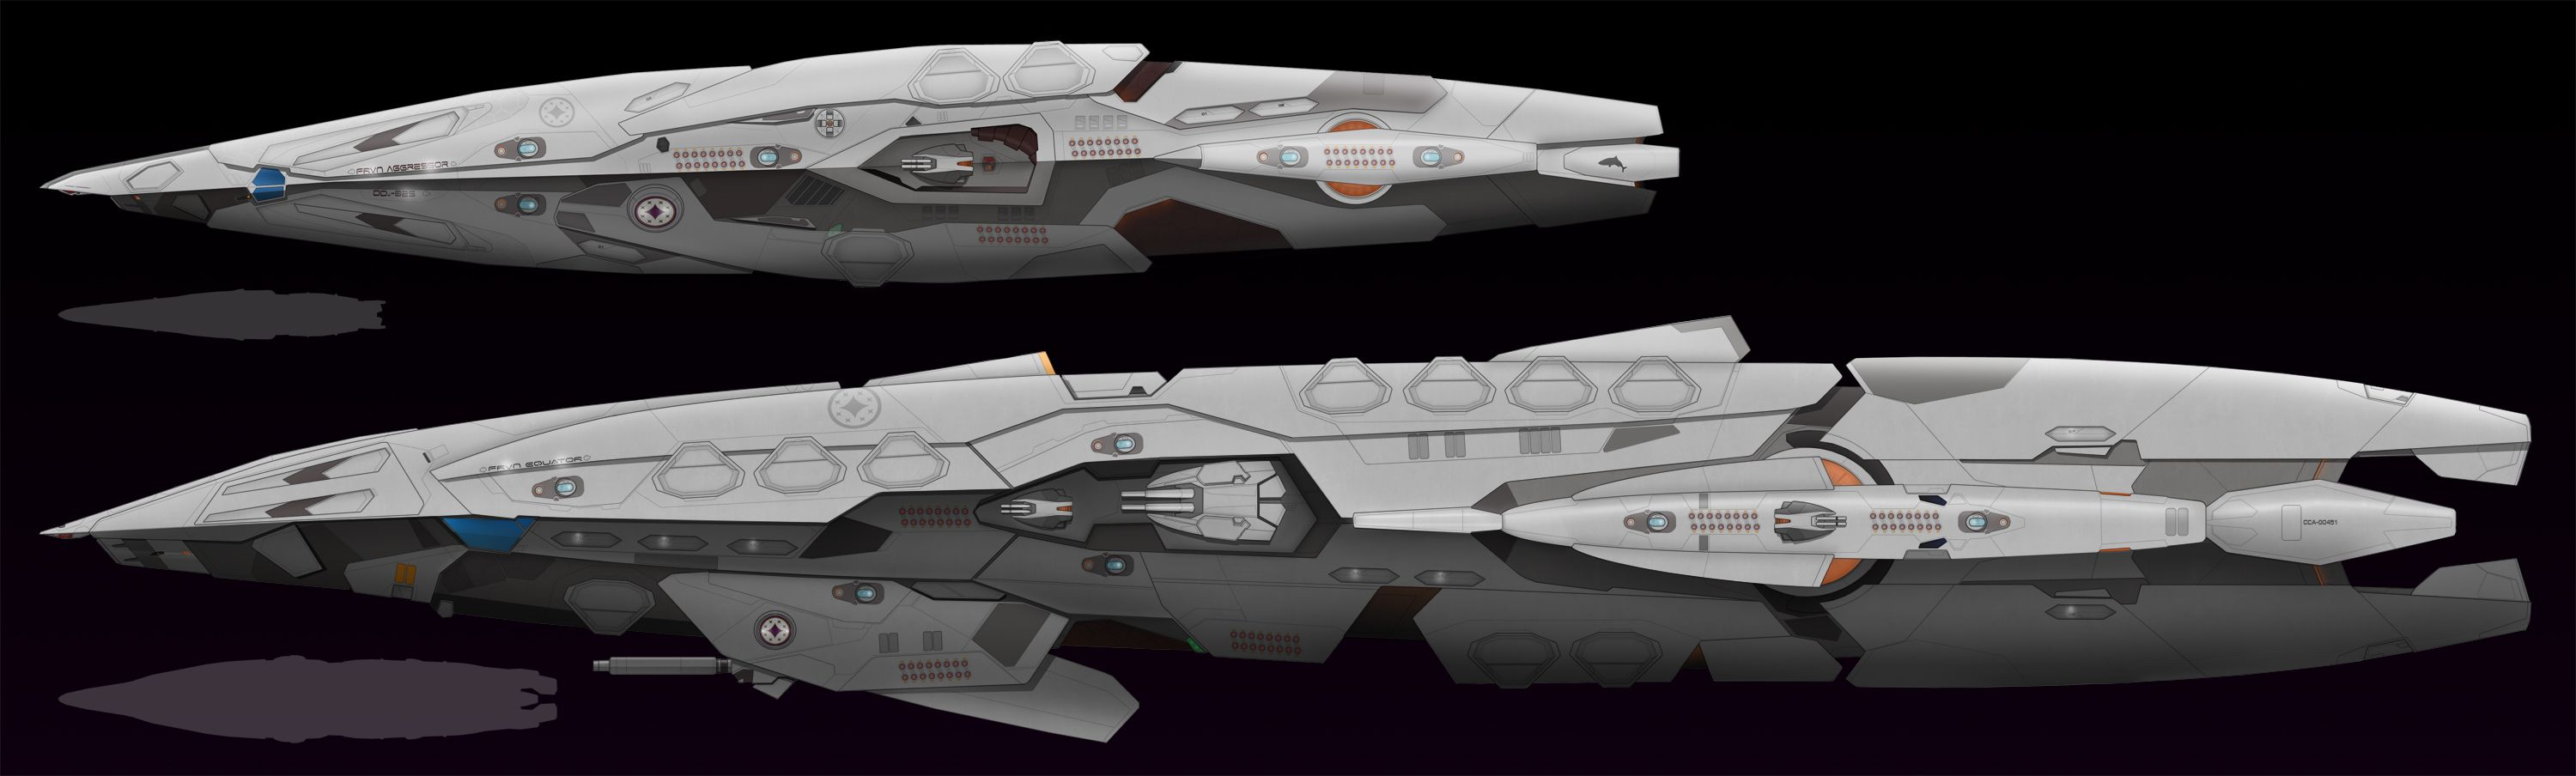 WIP Cruiser for the ROG by Mallacore on DeviantArt